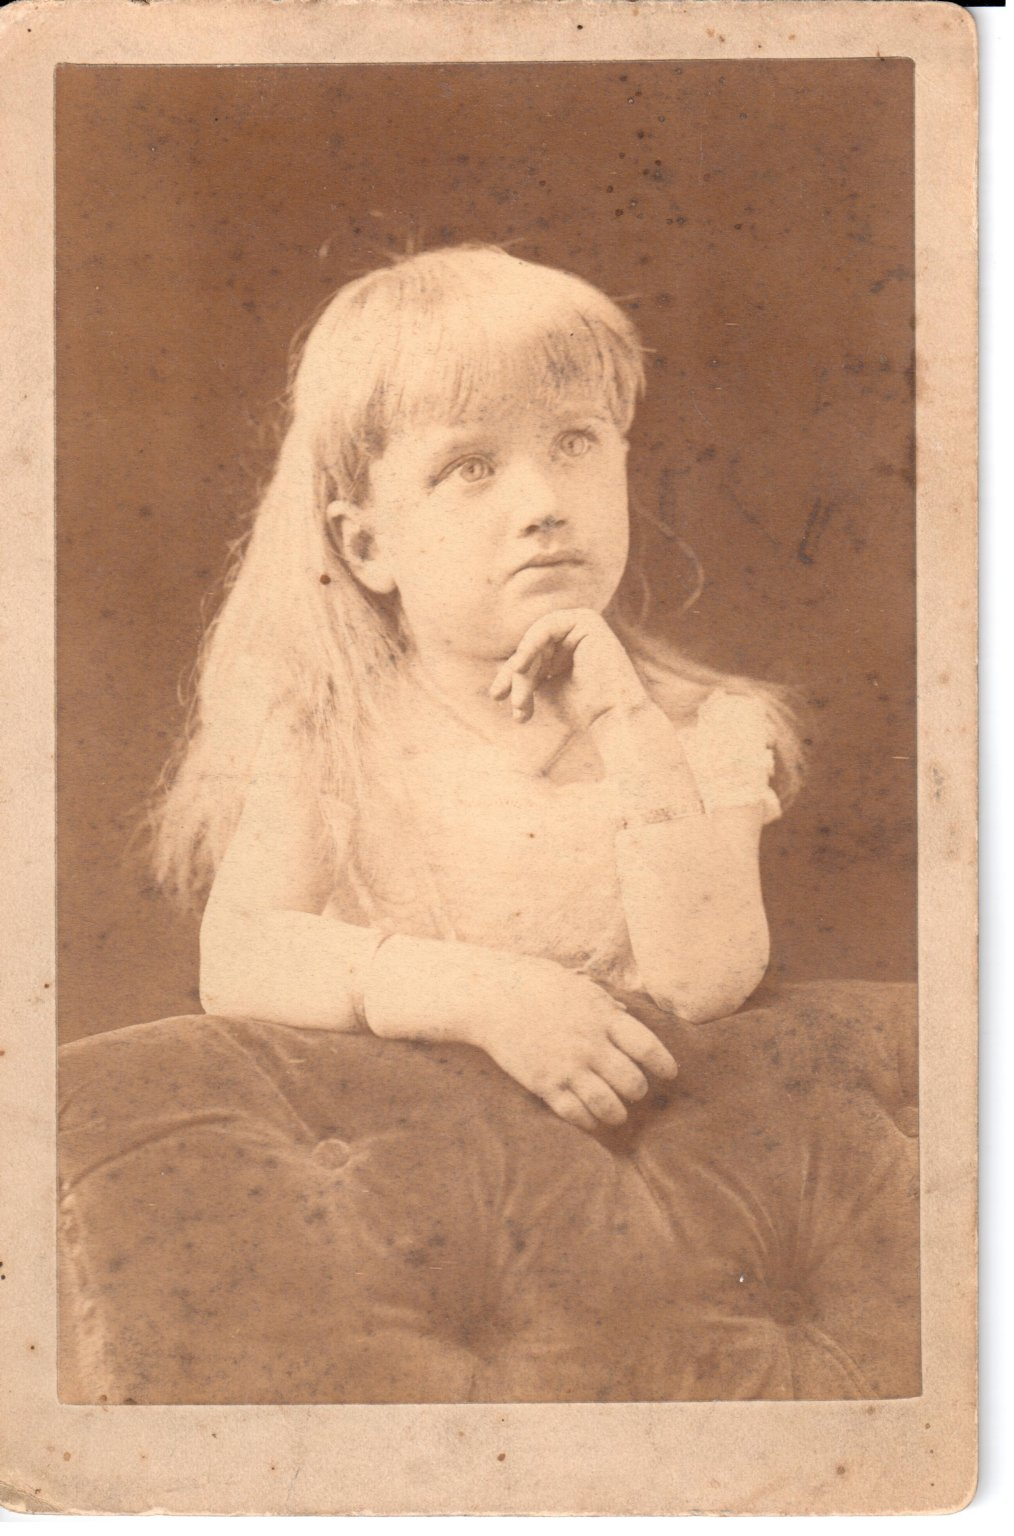 Little Girl With Bangs